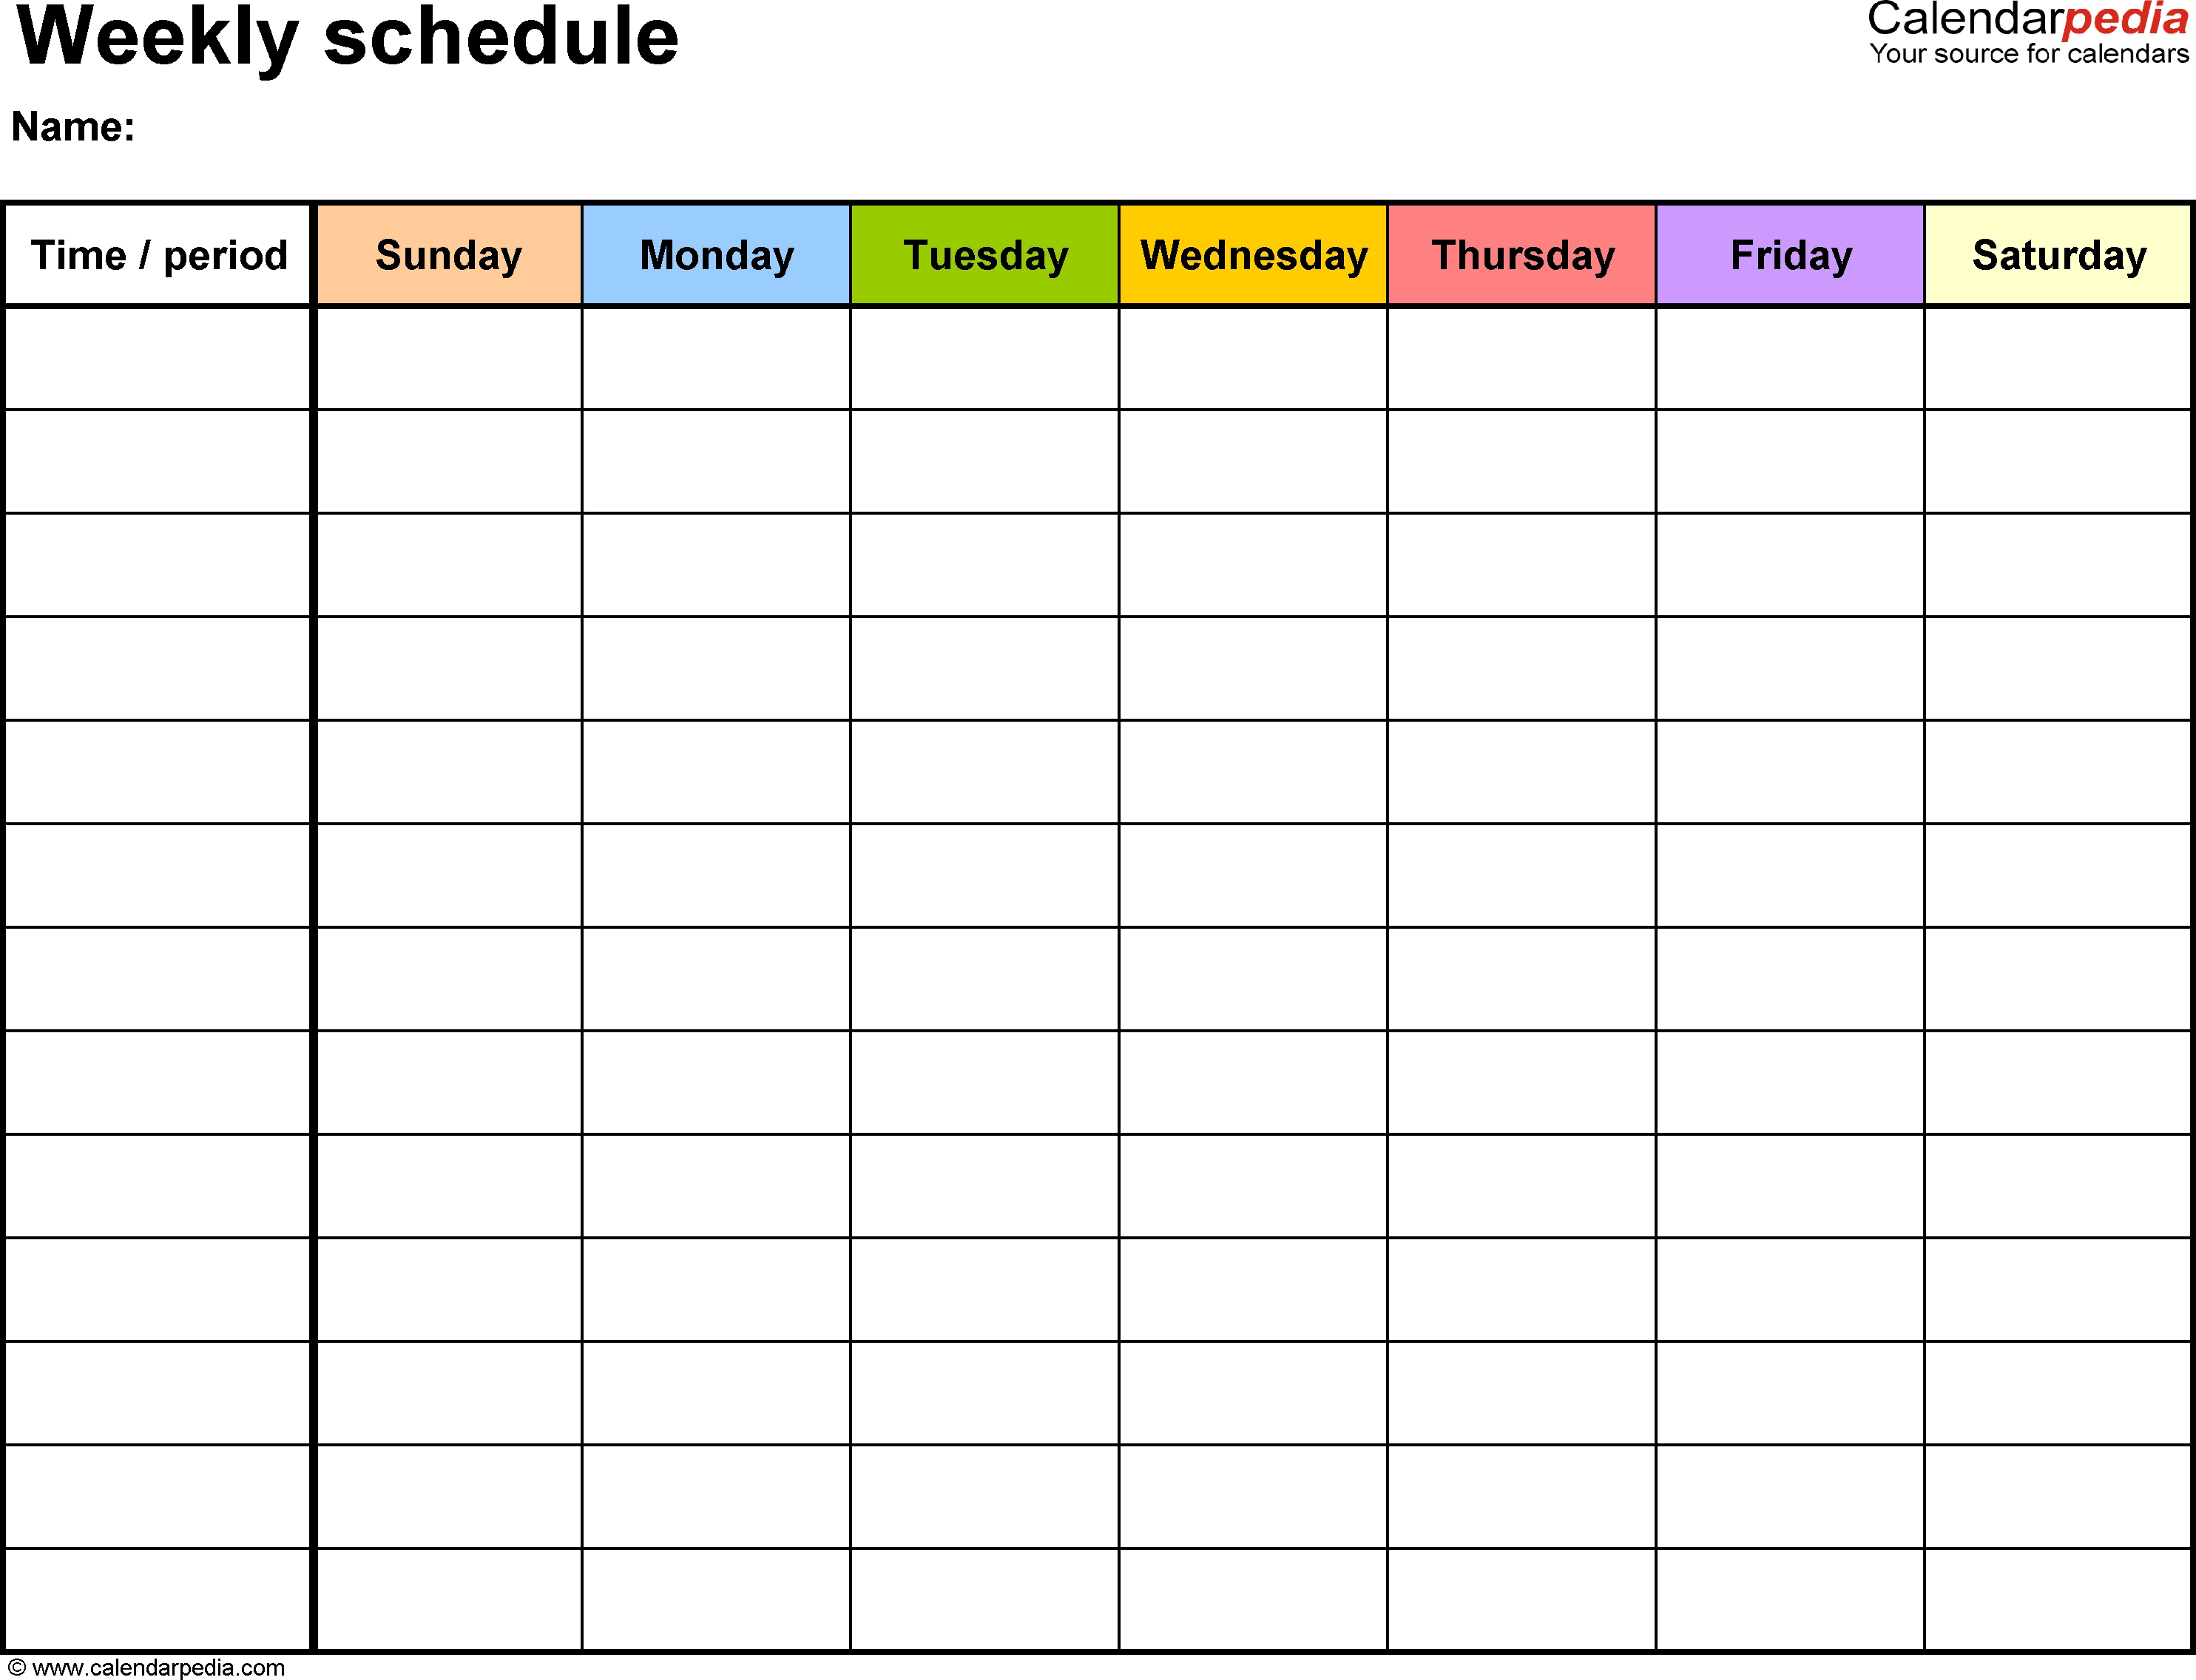 Free Weekly Schedule Templates For Word - 18 Templates throughout Weekly Schedule Monday - Sunday